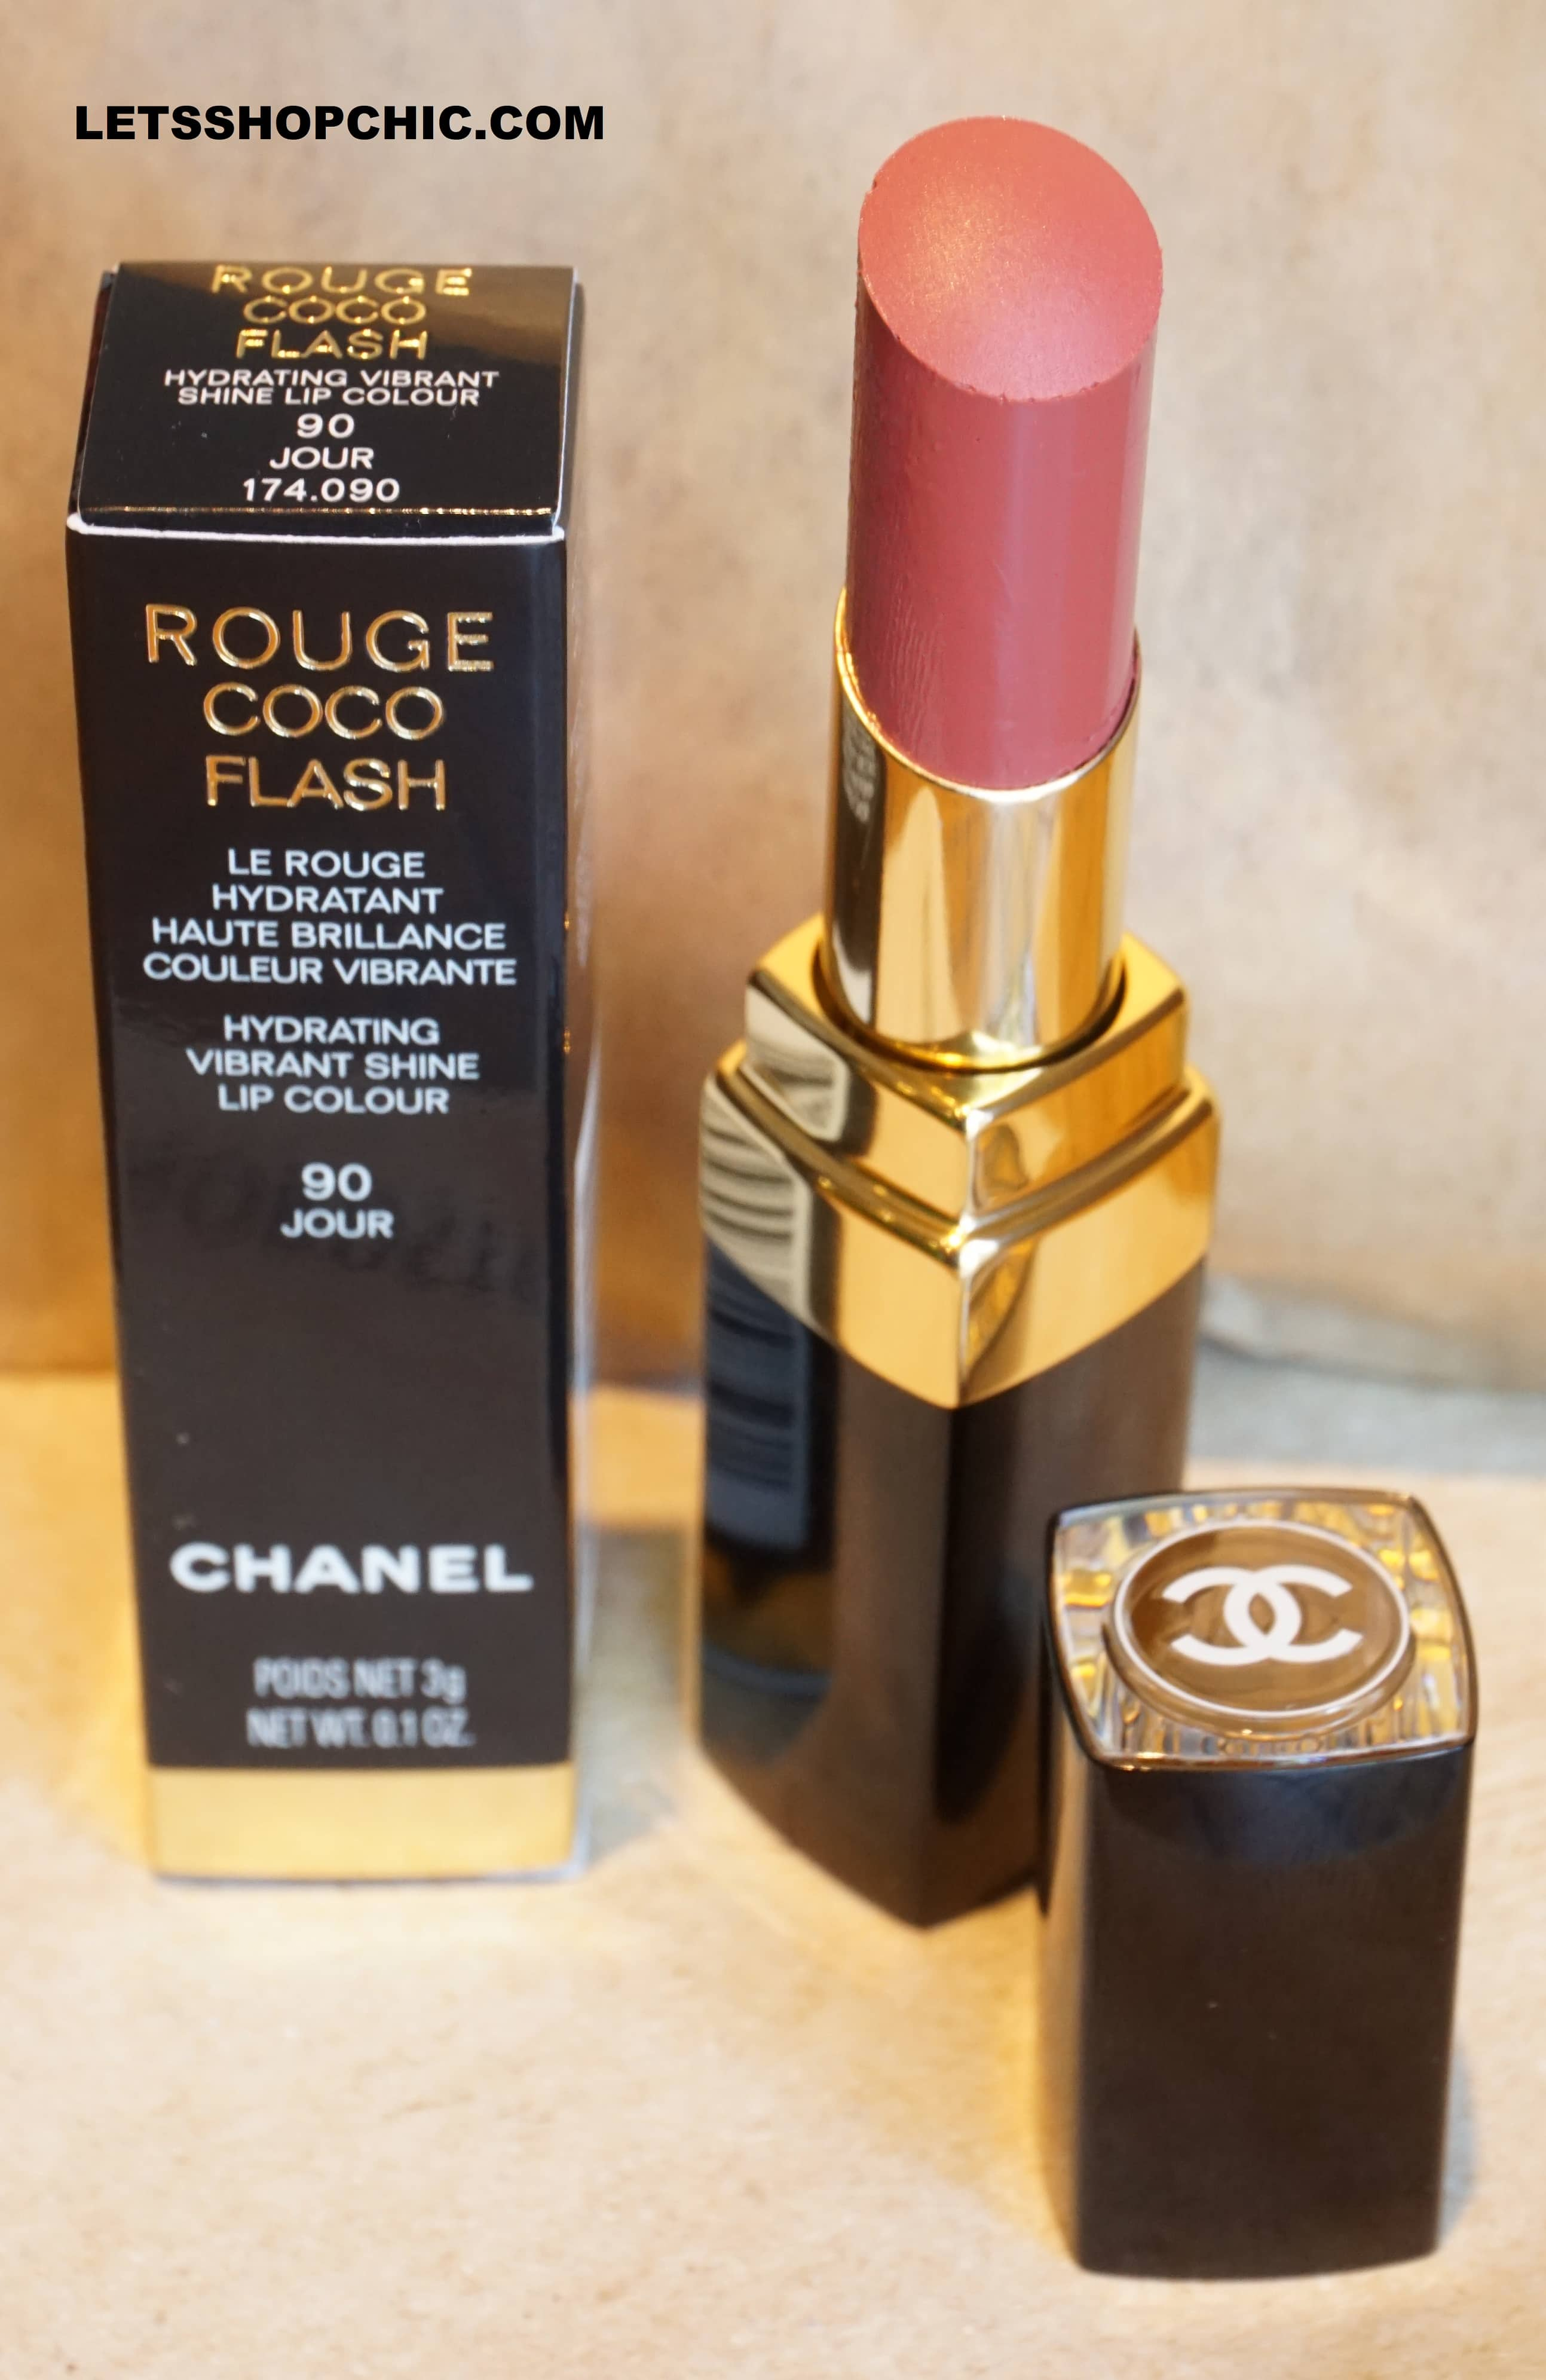 Chanel Rouge Coco Flash Lipstick 90 Jour packaging